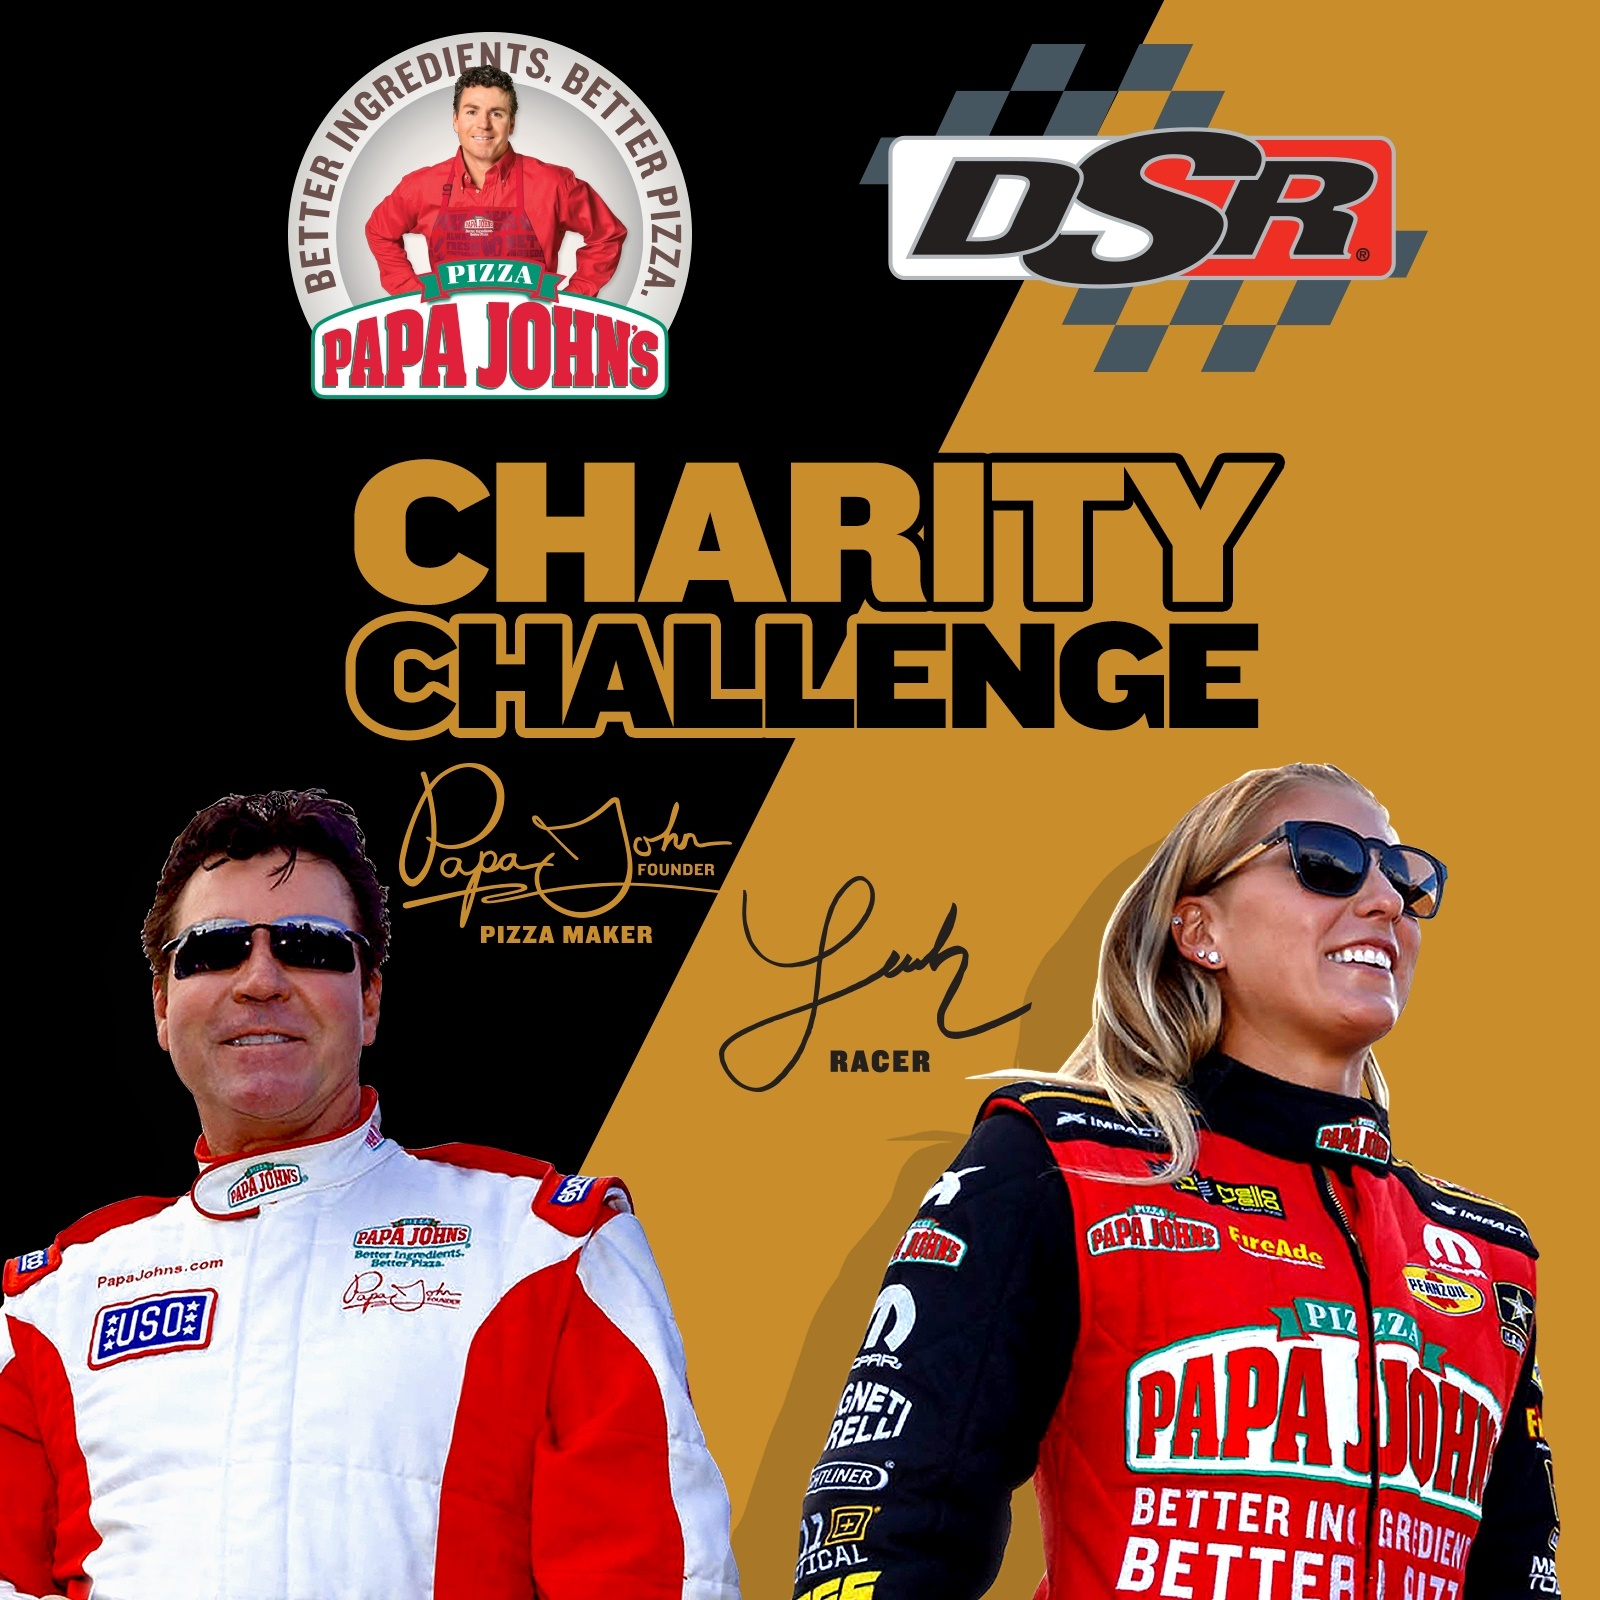 """""""Papa John,"""" the Founder, Chairman and CEO of Papa John's Pizza and Leah Pritchett, winner of three 2017 NHRA Top Fuel titles, will face off in their second Charity Challenge this season on Saturday, April 29, at the NHRA Four-Wide Nationals in Charlotte. (Photo: Business Wire)"""